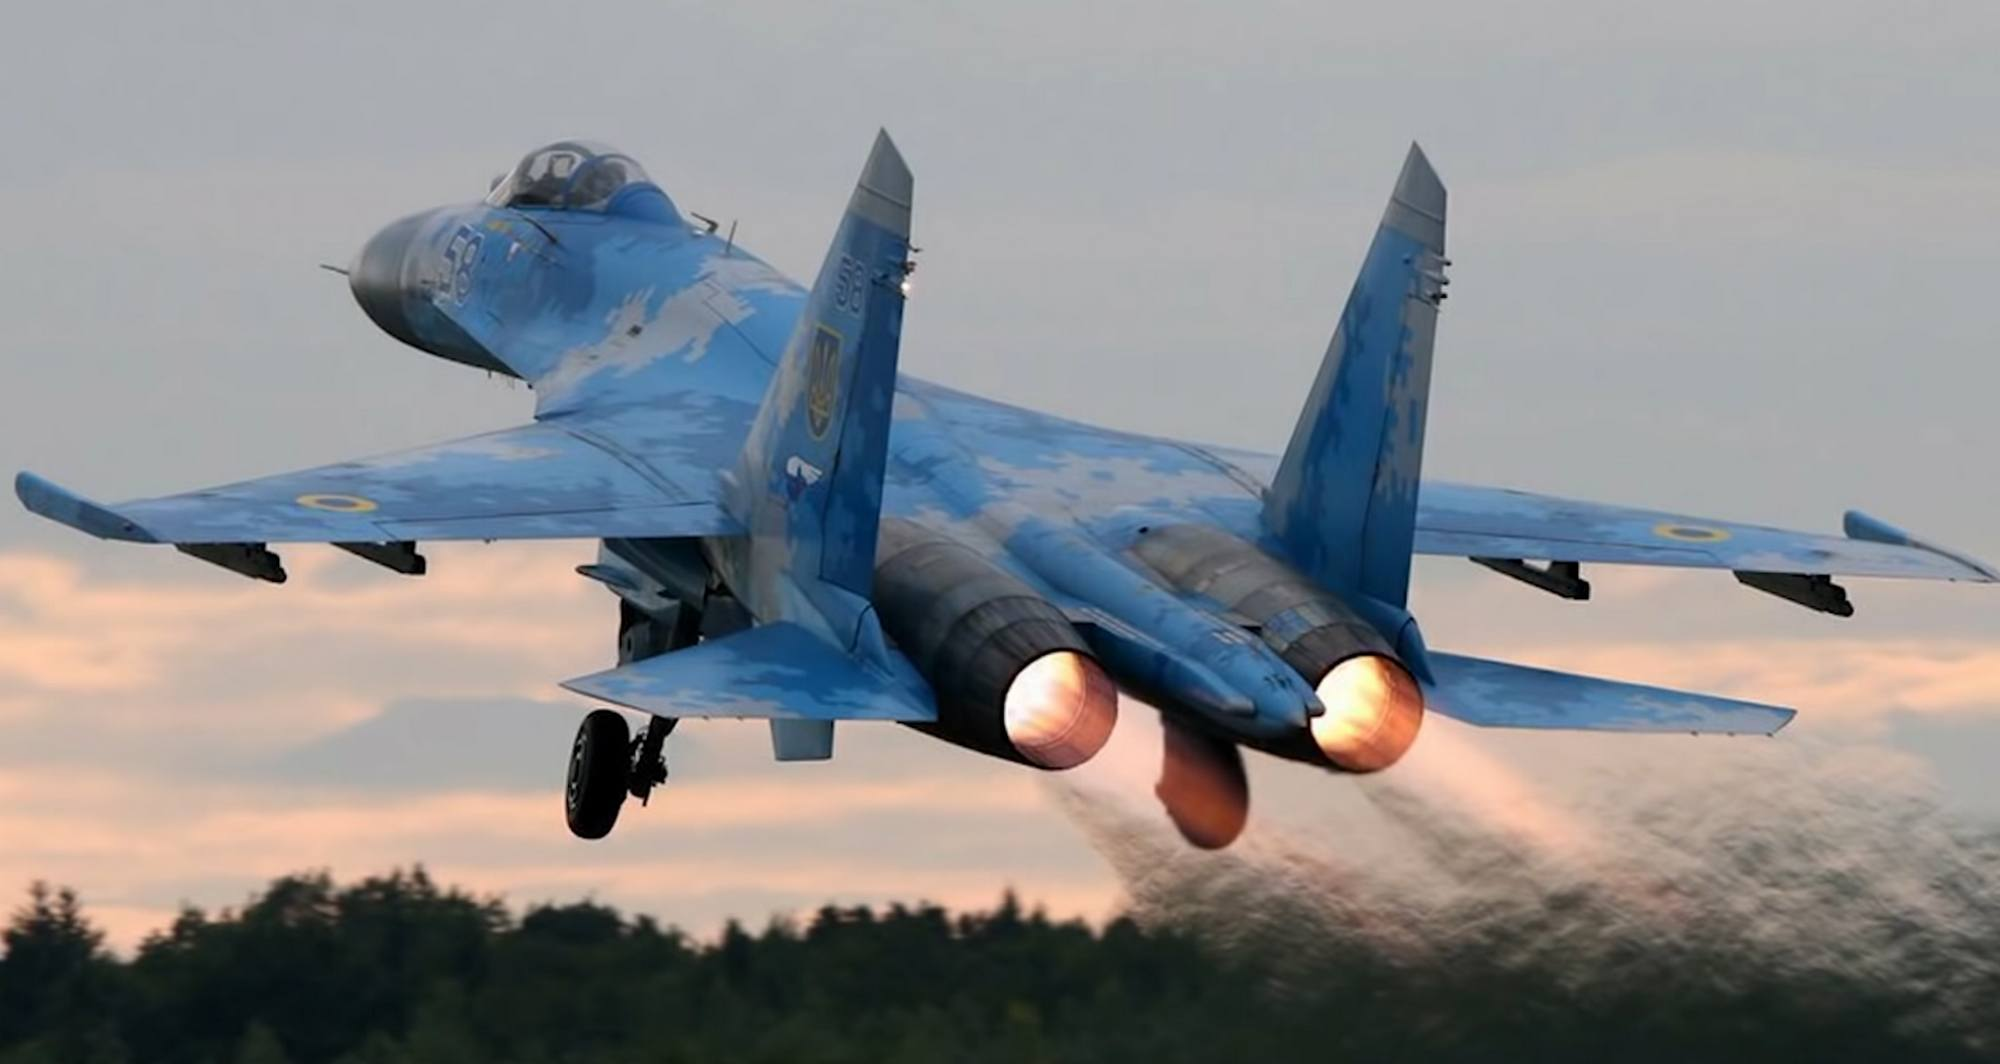 Top 10 Fastest Airplanes - Fighters (1)